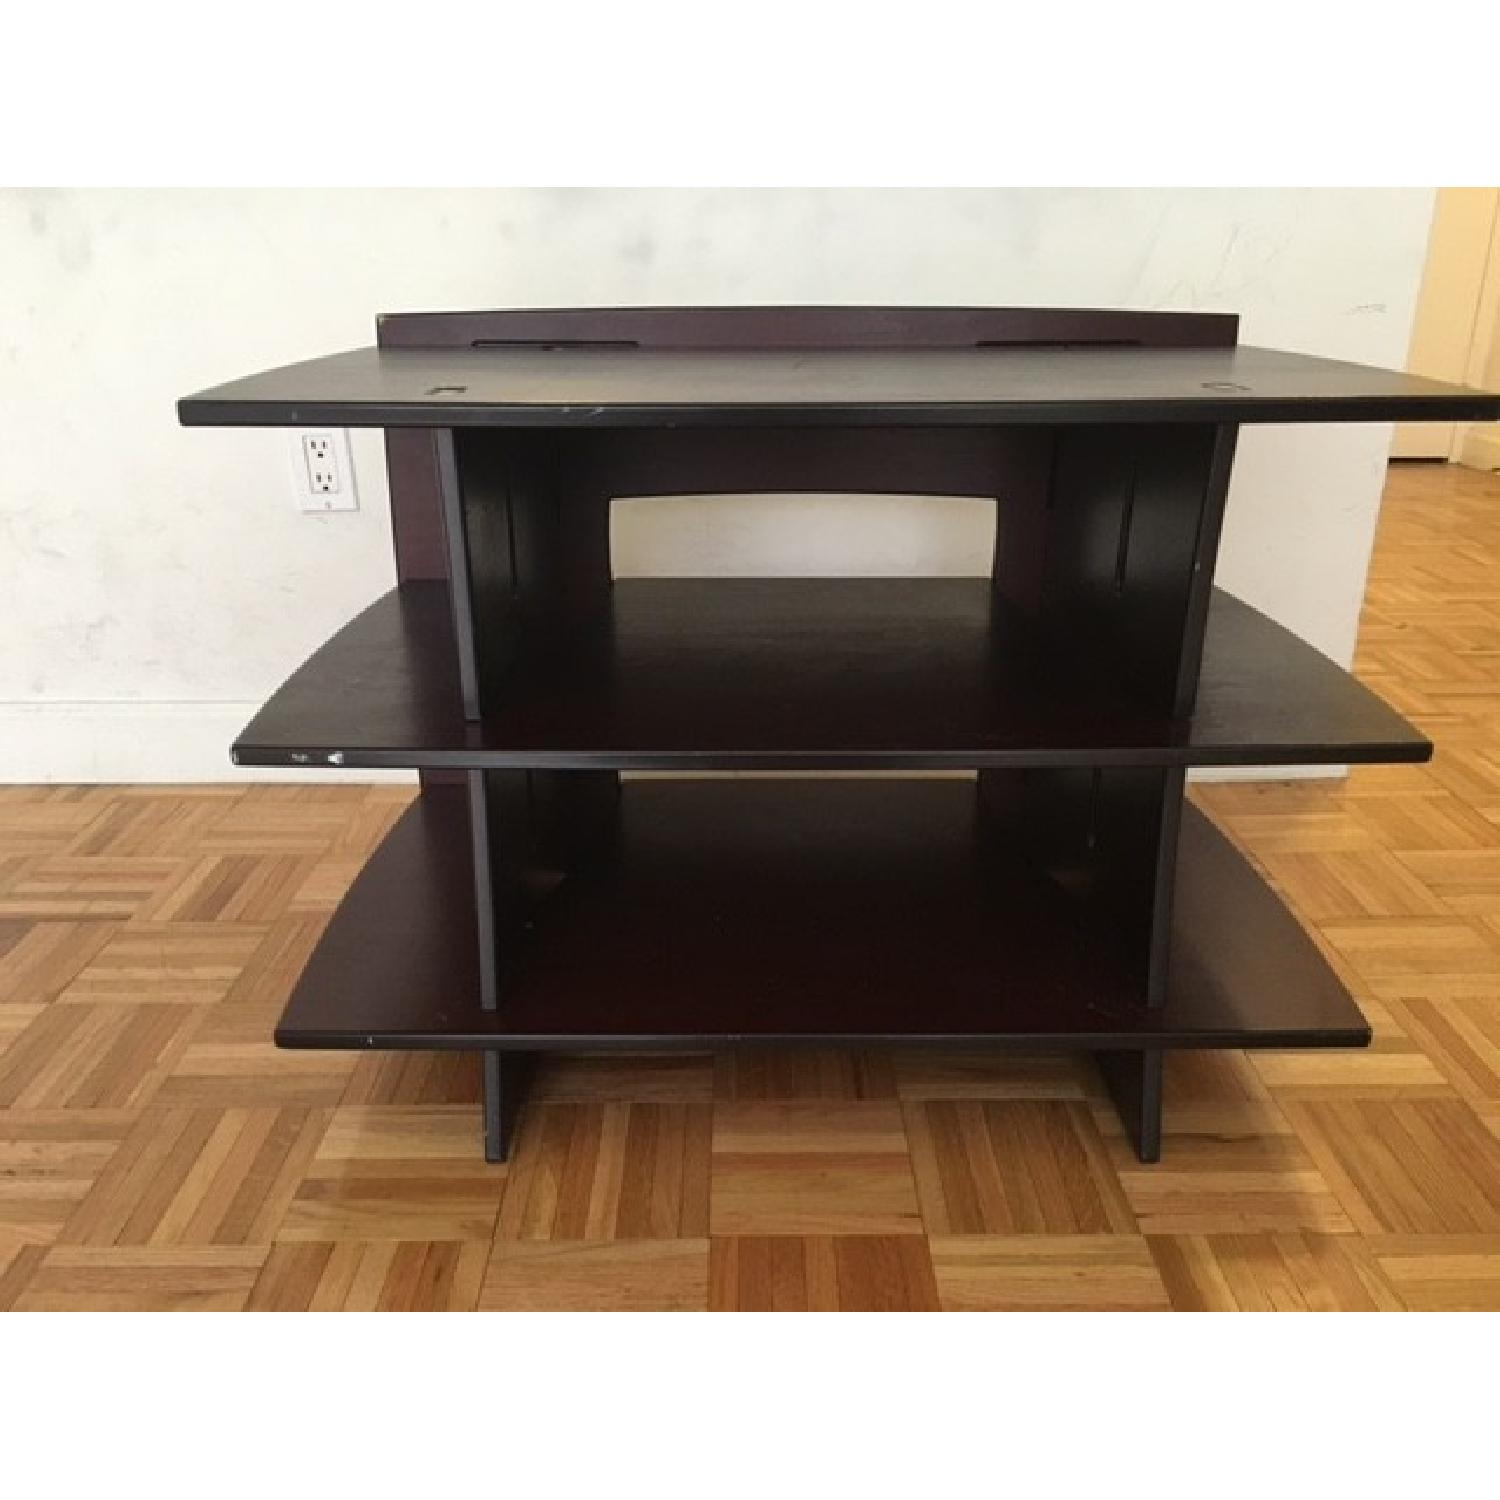 Pier 1 Collapsible TV Stand - image-1